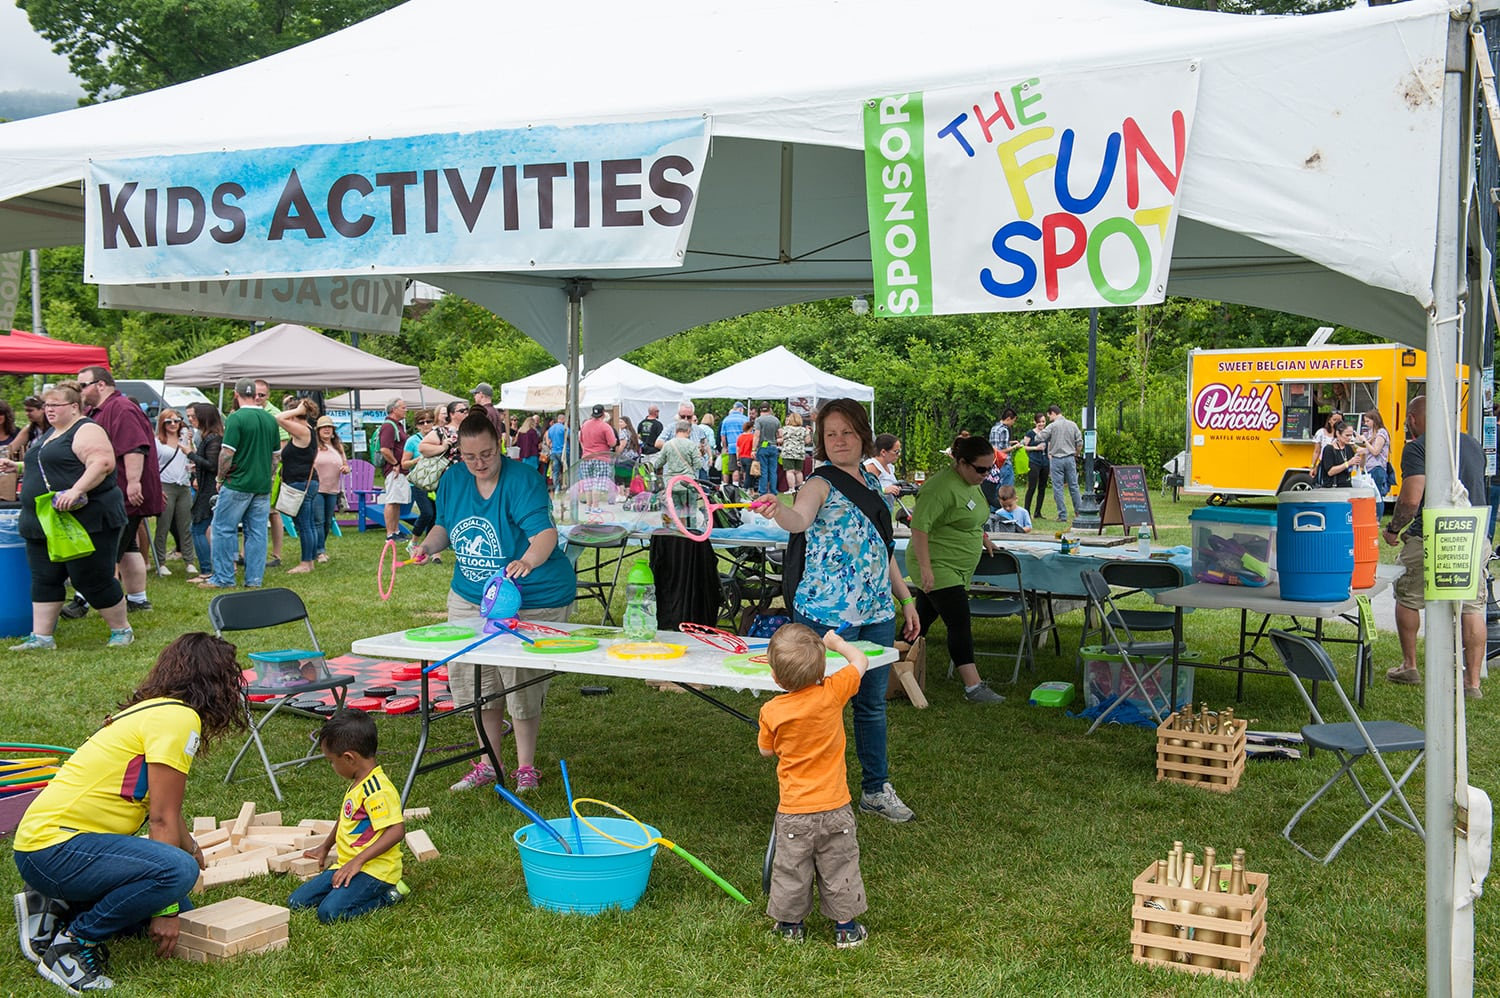 Lake George is a family destination! Aside from a kids activity tent on premise with outdoor games, bubbles & more; there is an amazing natural children′s playground just outside the festival grounds.